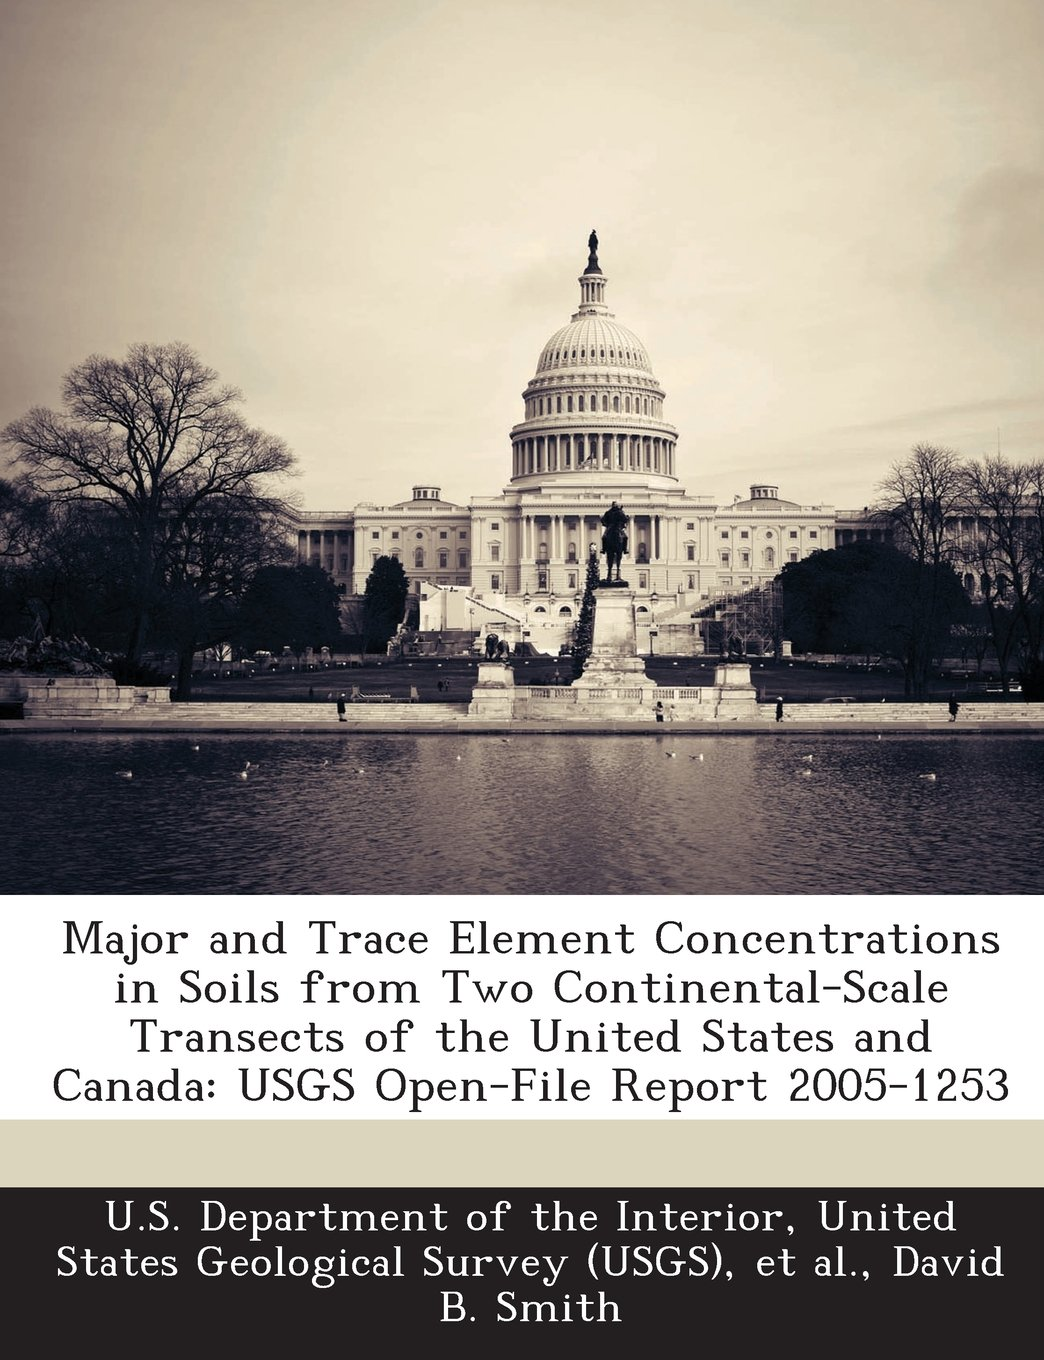 Download Major and Trace Element Concentrations in Soils from Two Continental-Scale Transects of the United States and Canada: Usgs Open-File Report 2005-1253 ebook